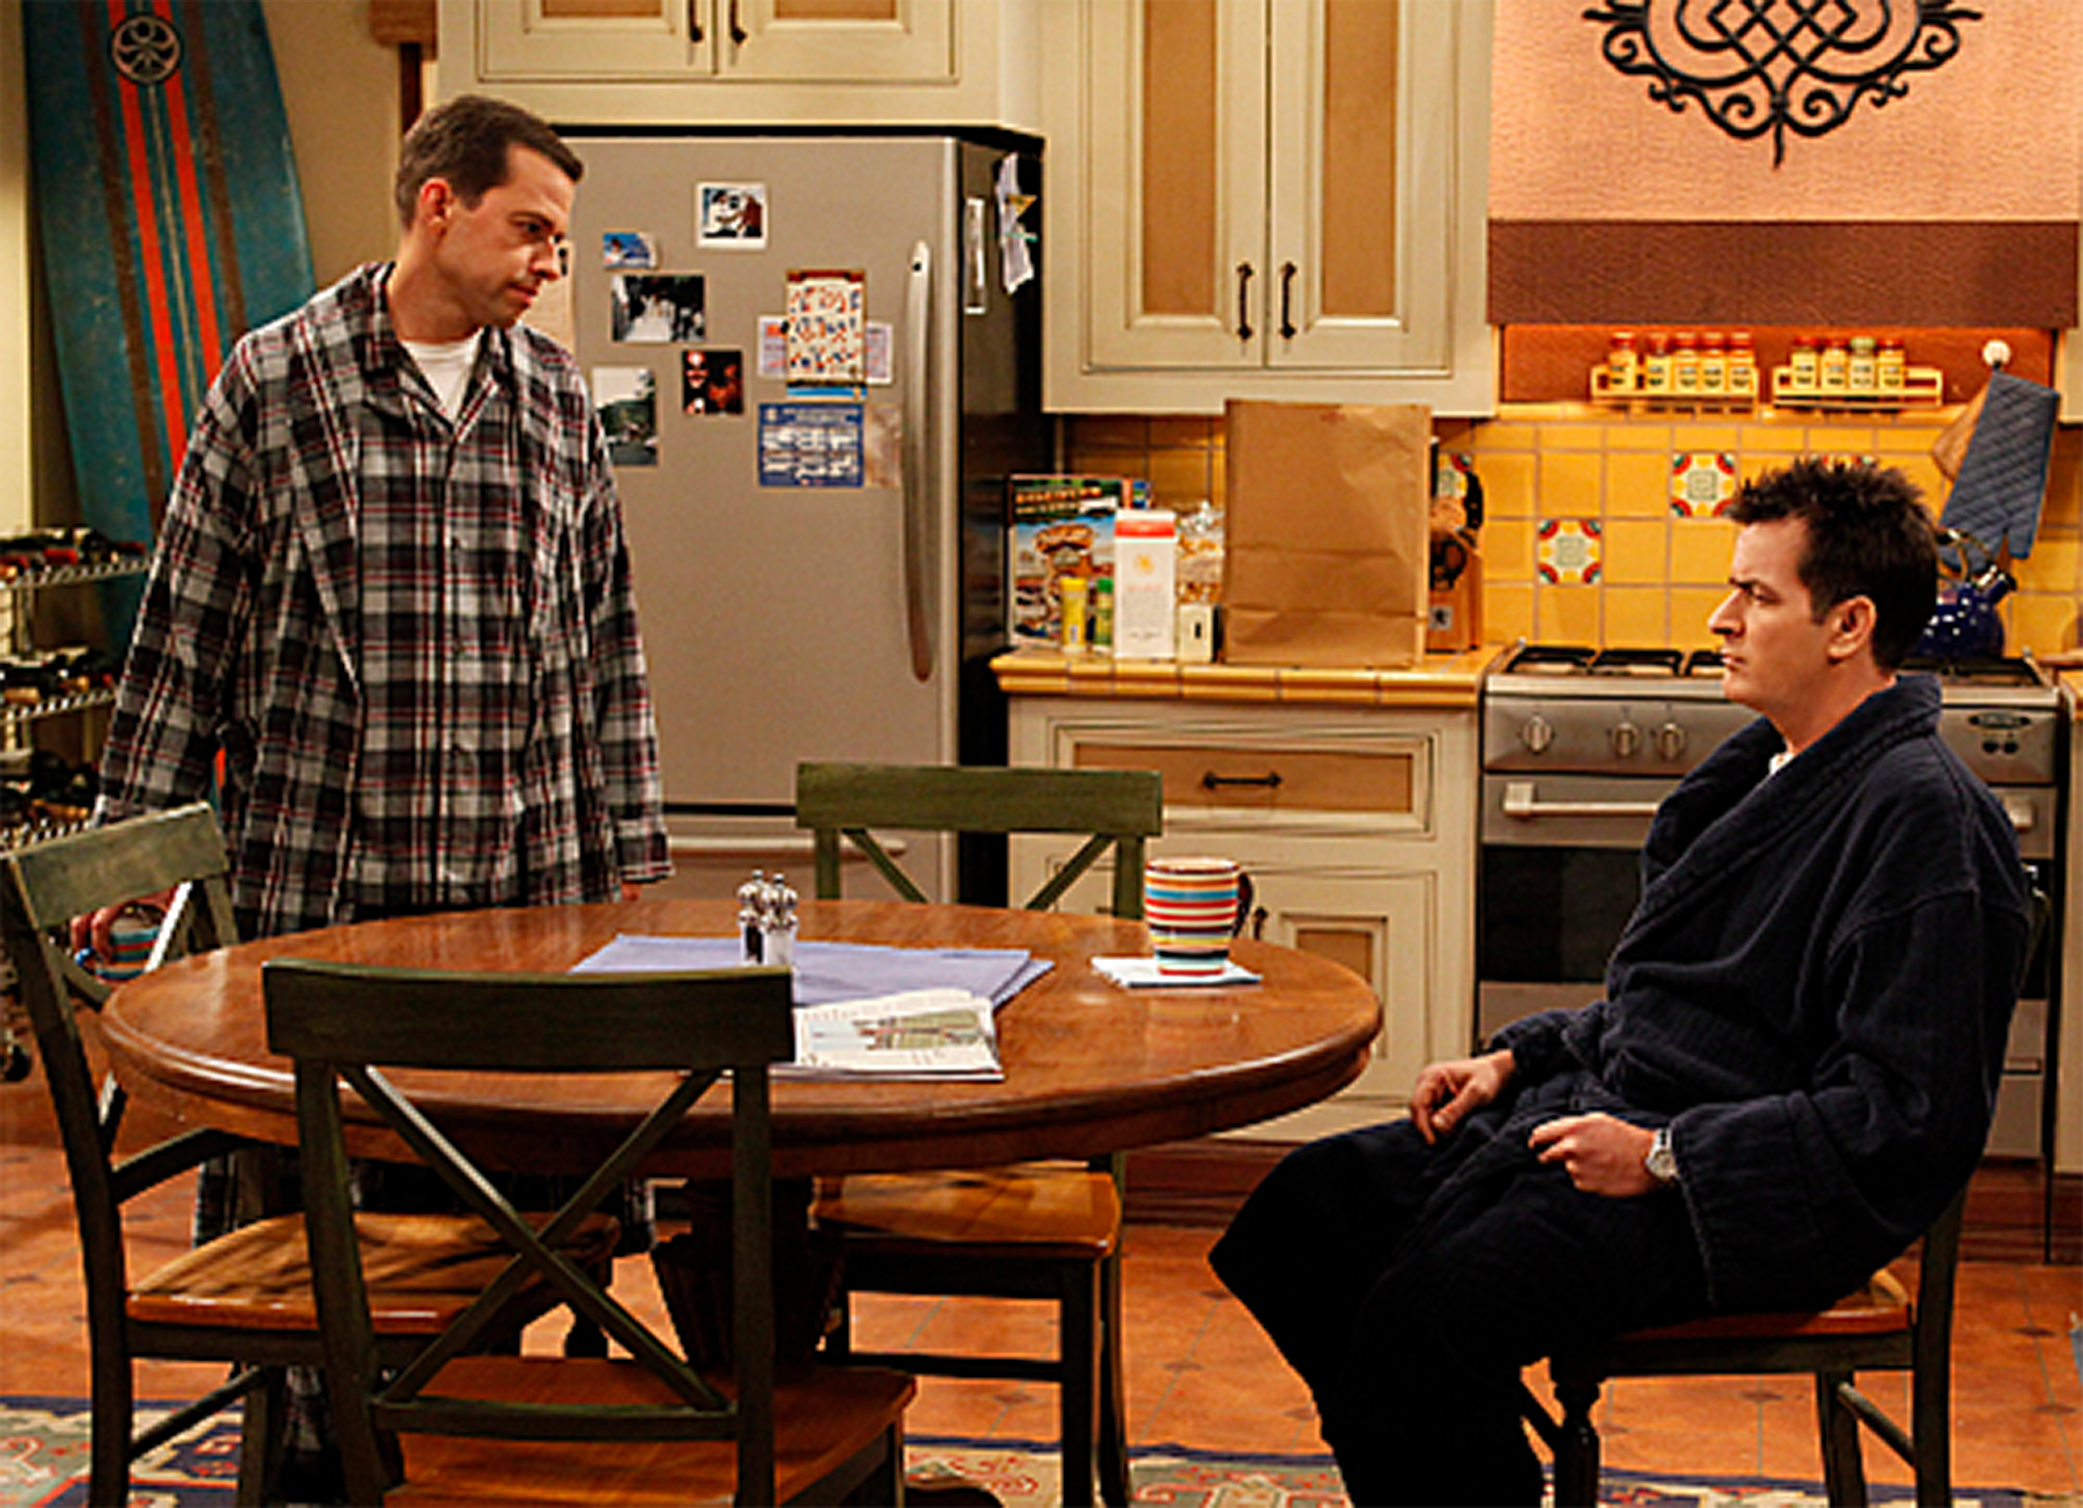 Couchtisch Two And A Half Men Summary Amazoncom Two And A Half Men Season 1 Charlie Sheen